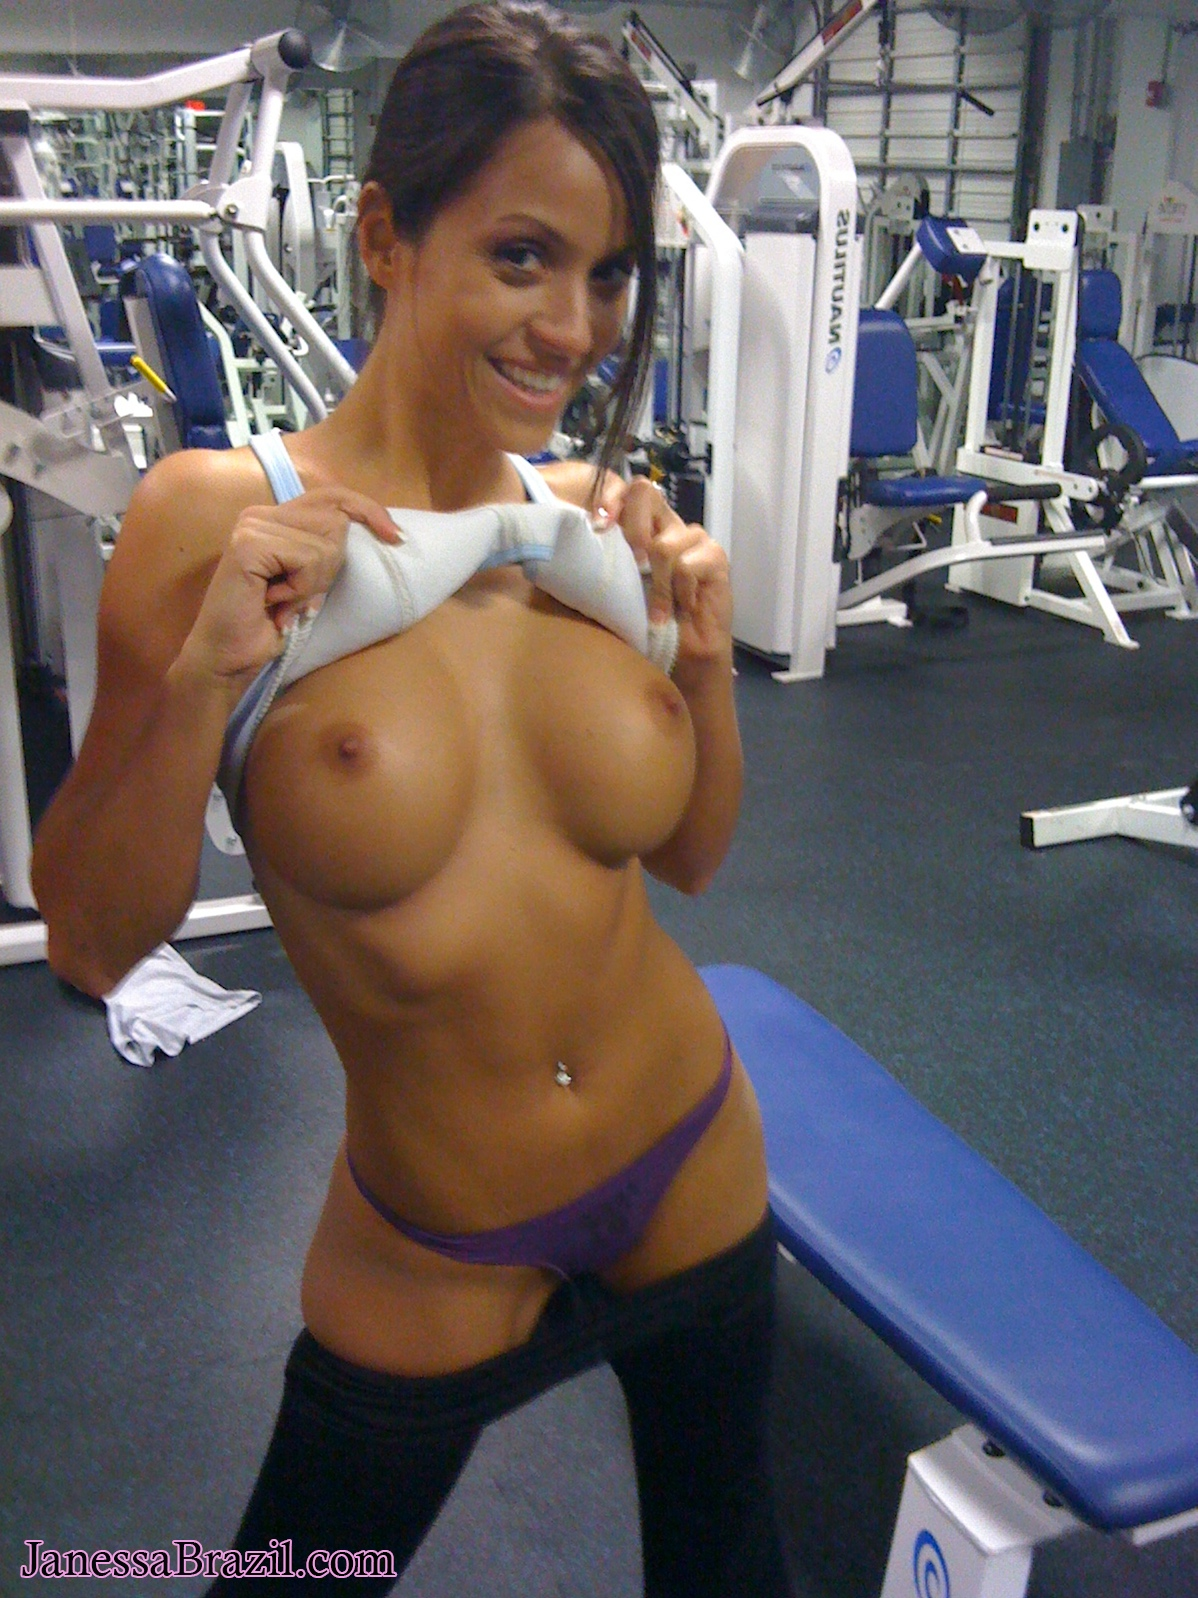 Nude small boobed woman working out